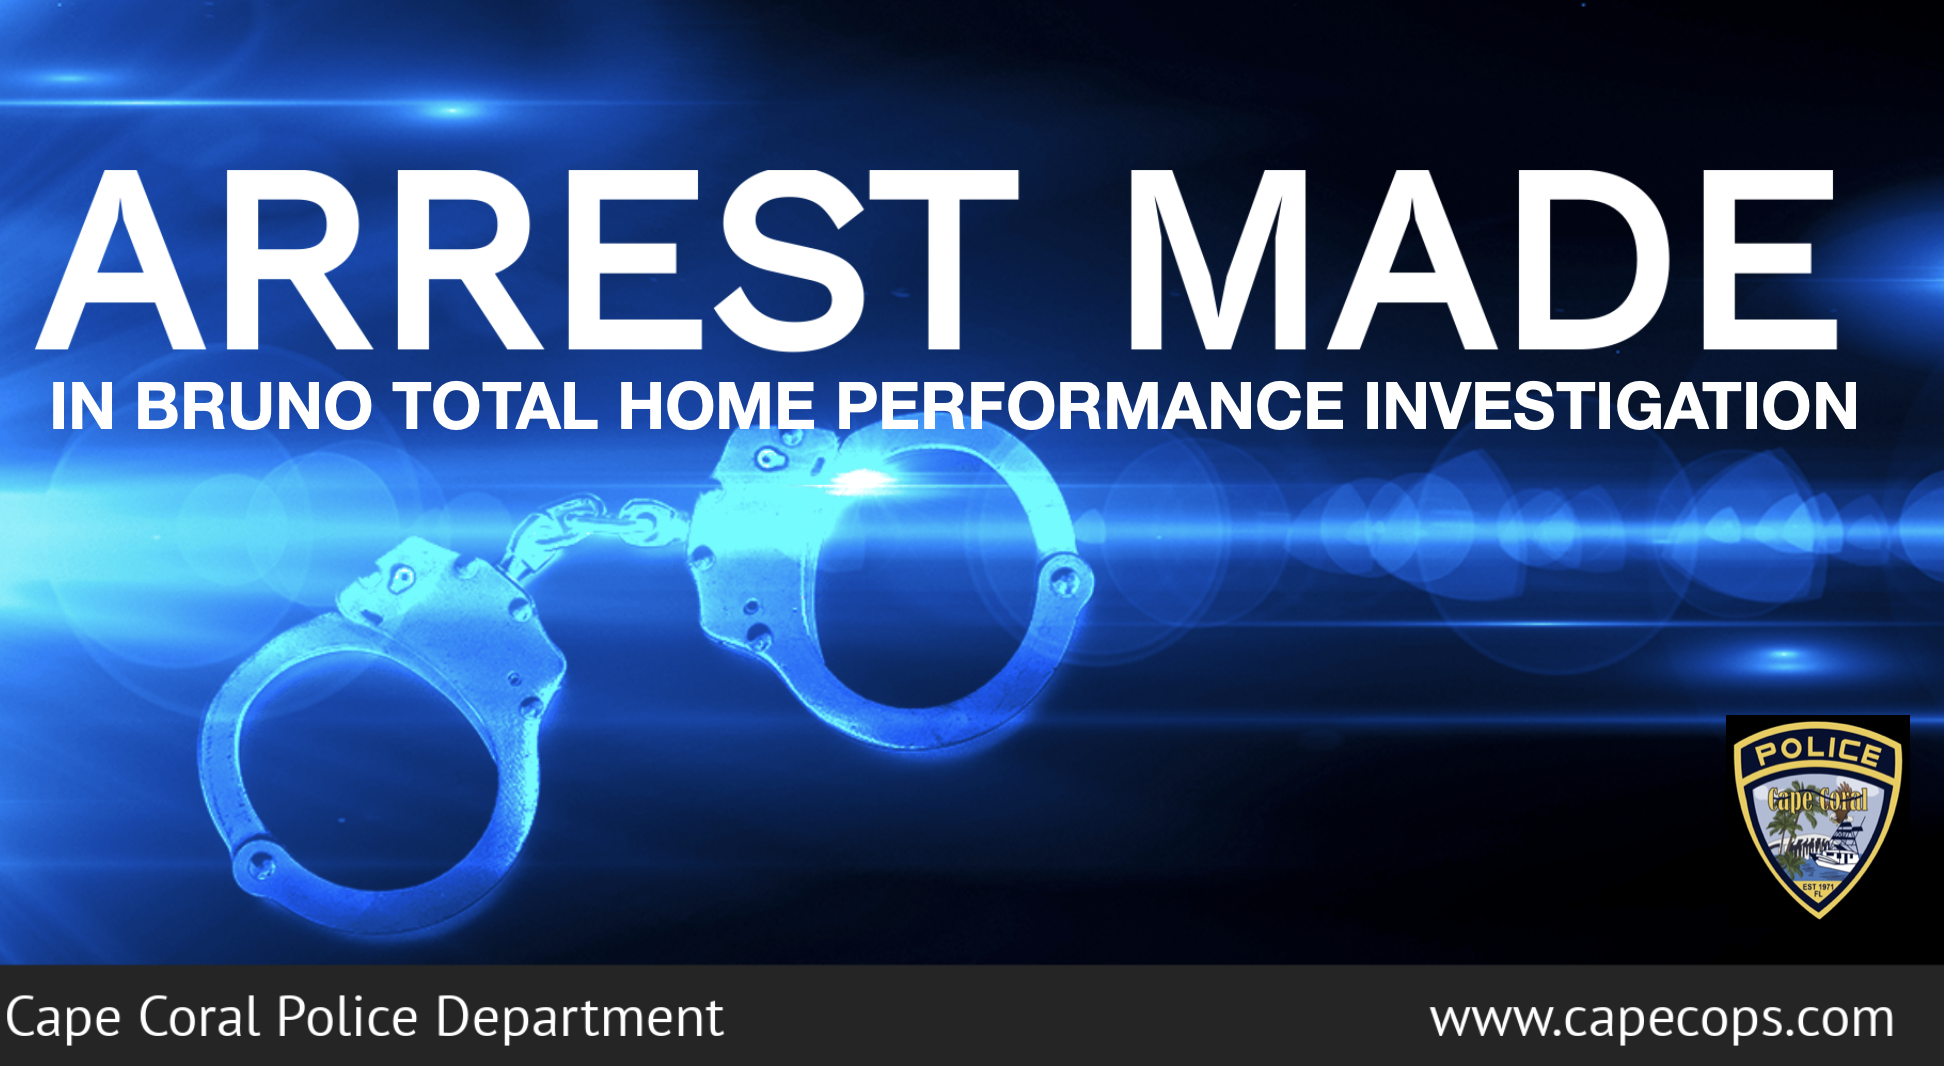 Arrests Made In The Bruno Total Home Performance